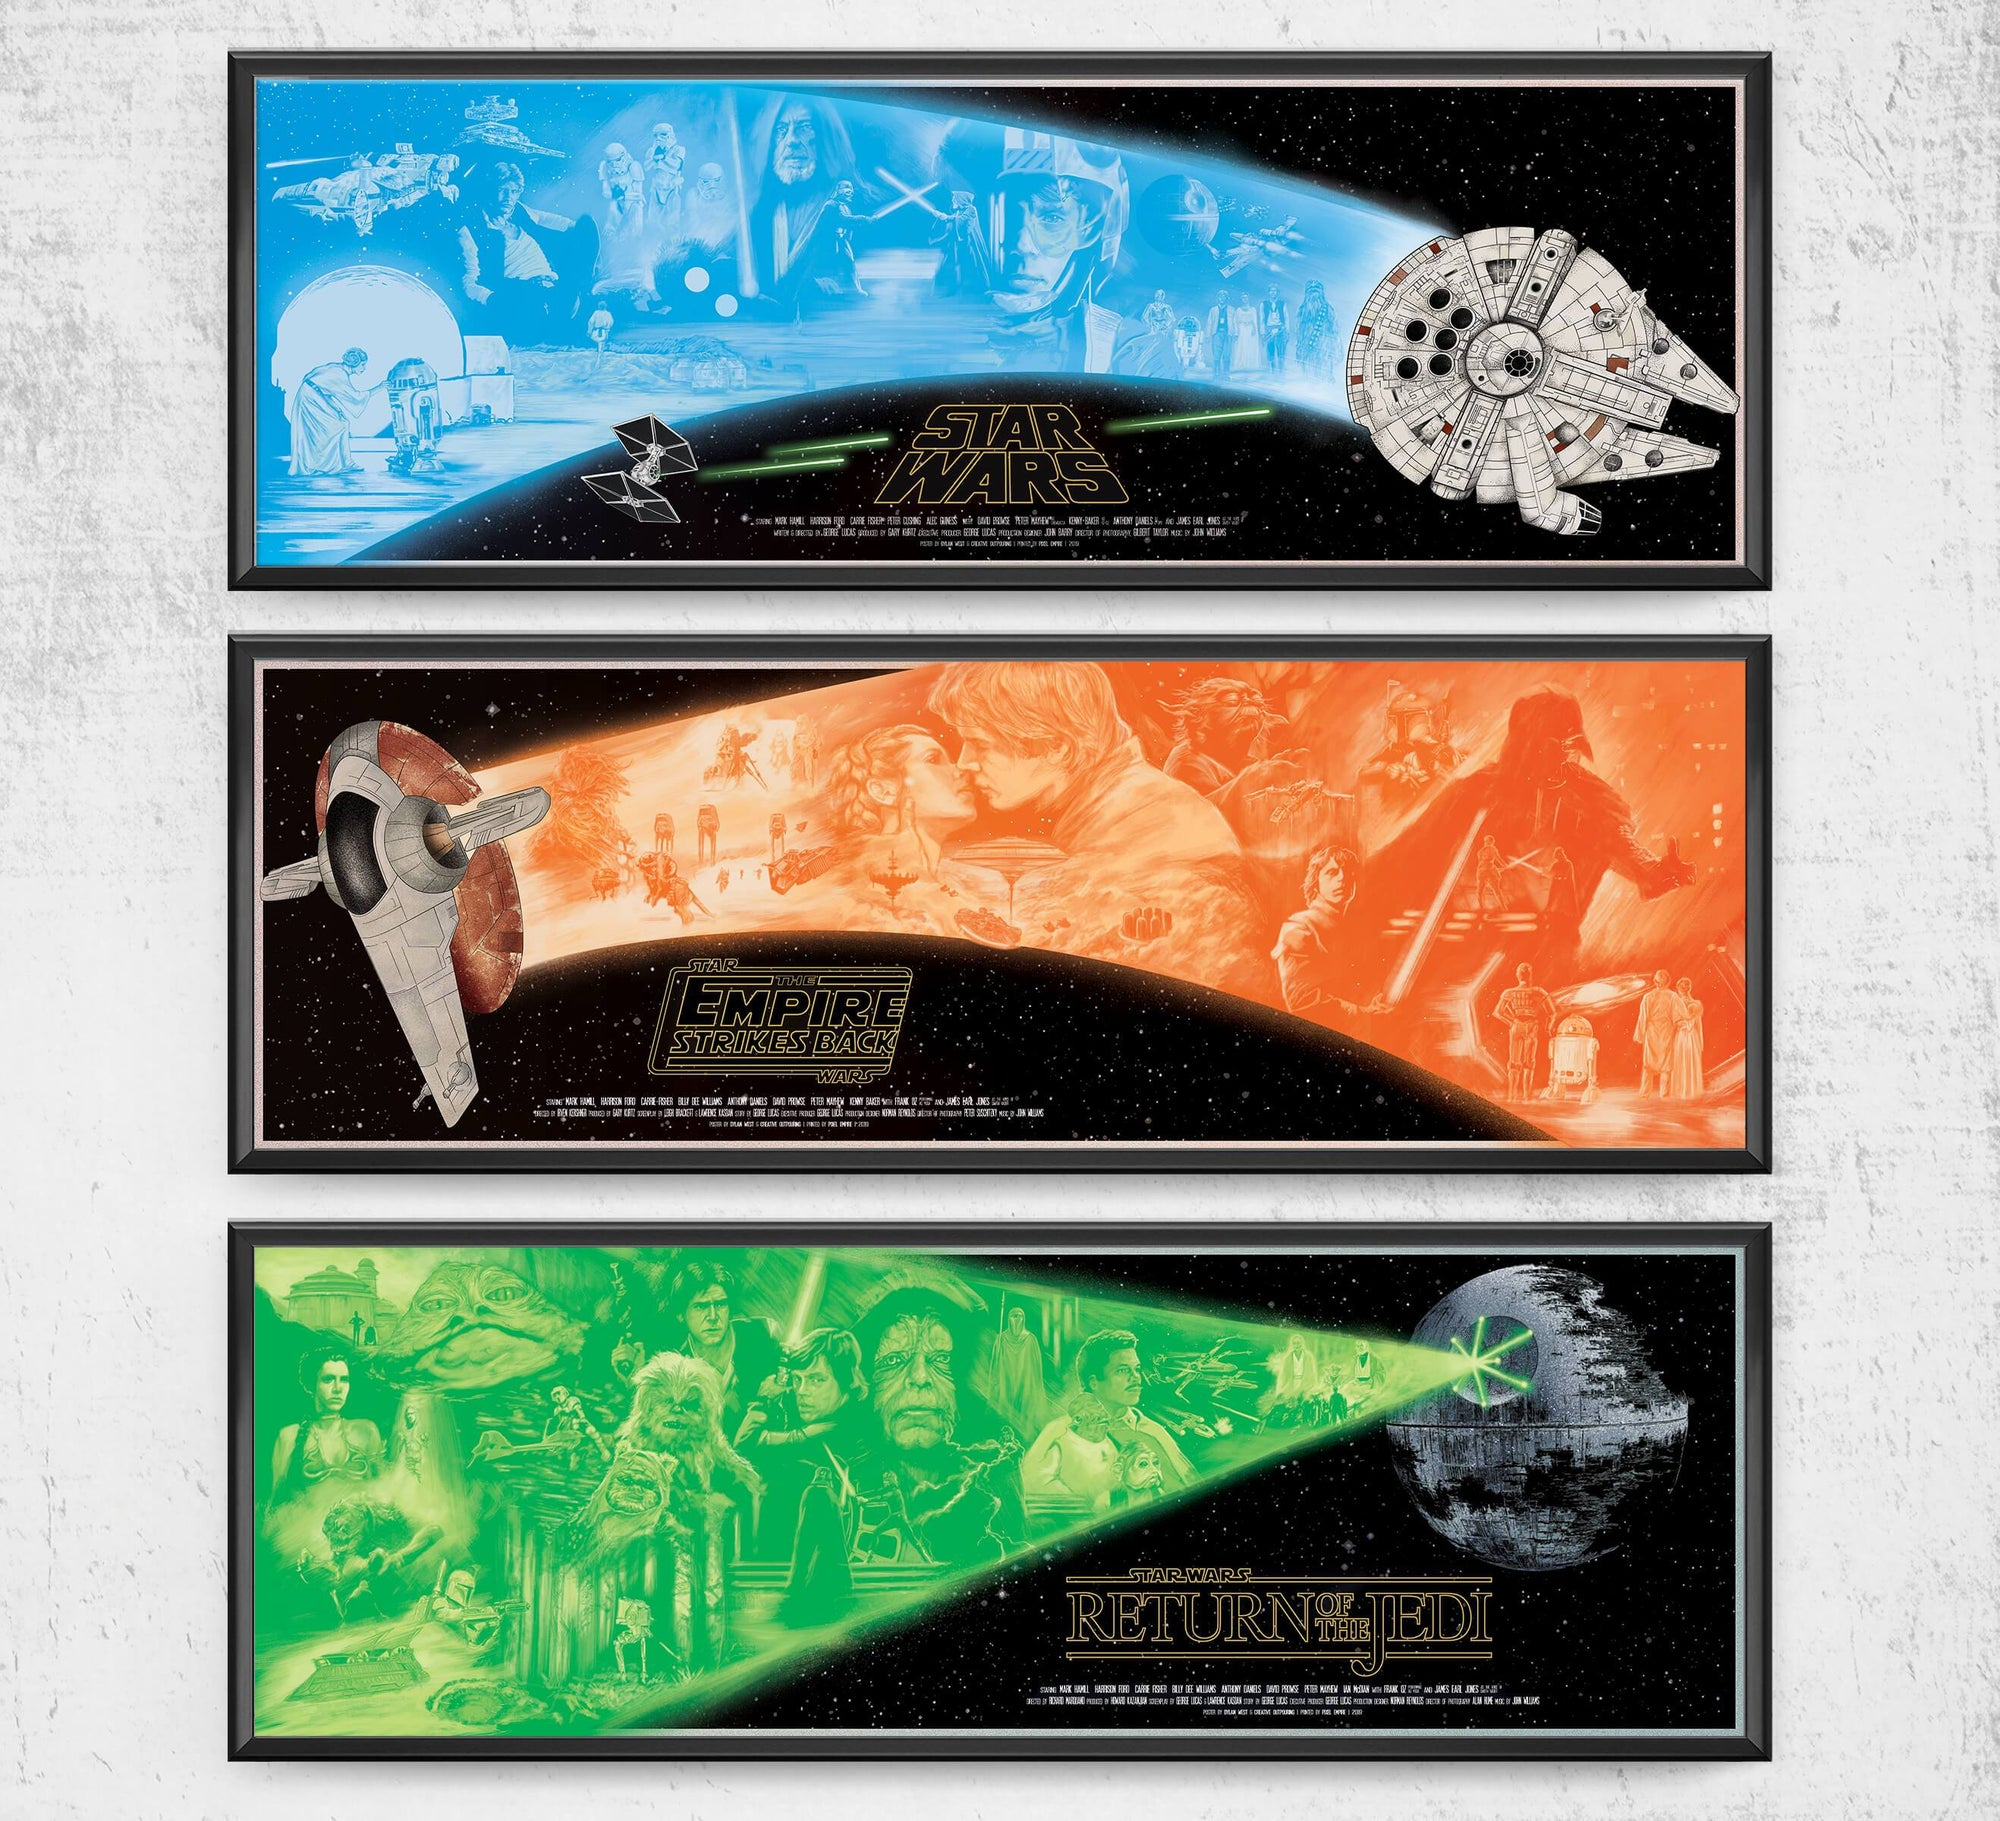 "Star Wars - Limited Edition Trilogy - 36"" x 11.75"" Prints Posters by Dylan West - Pixel Empire"